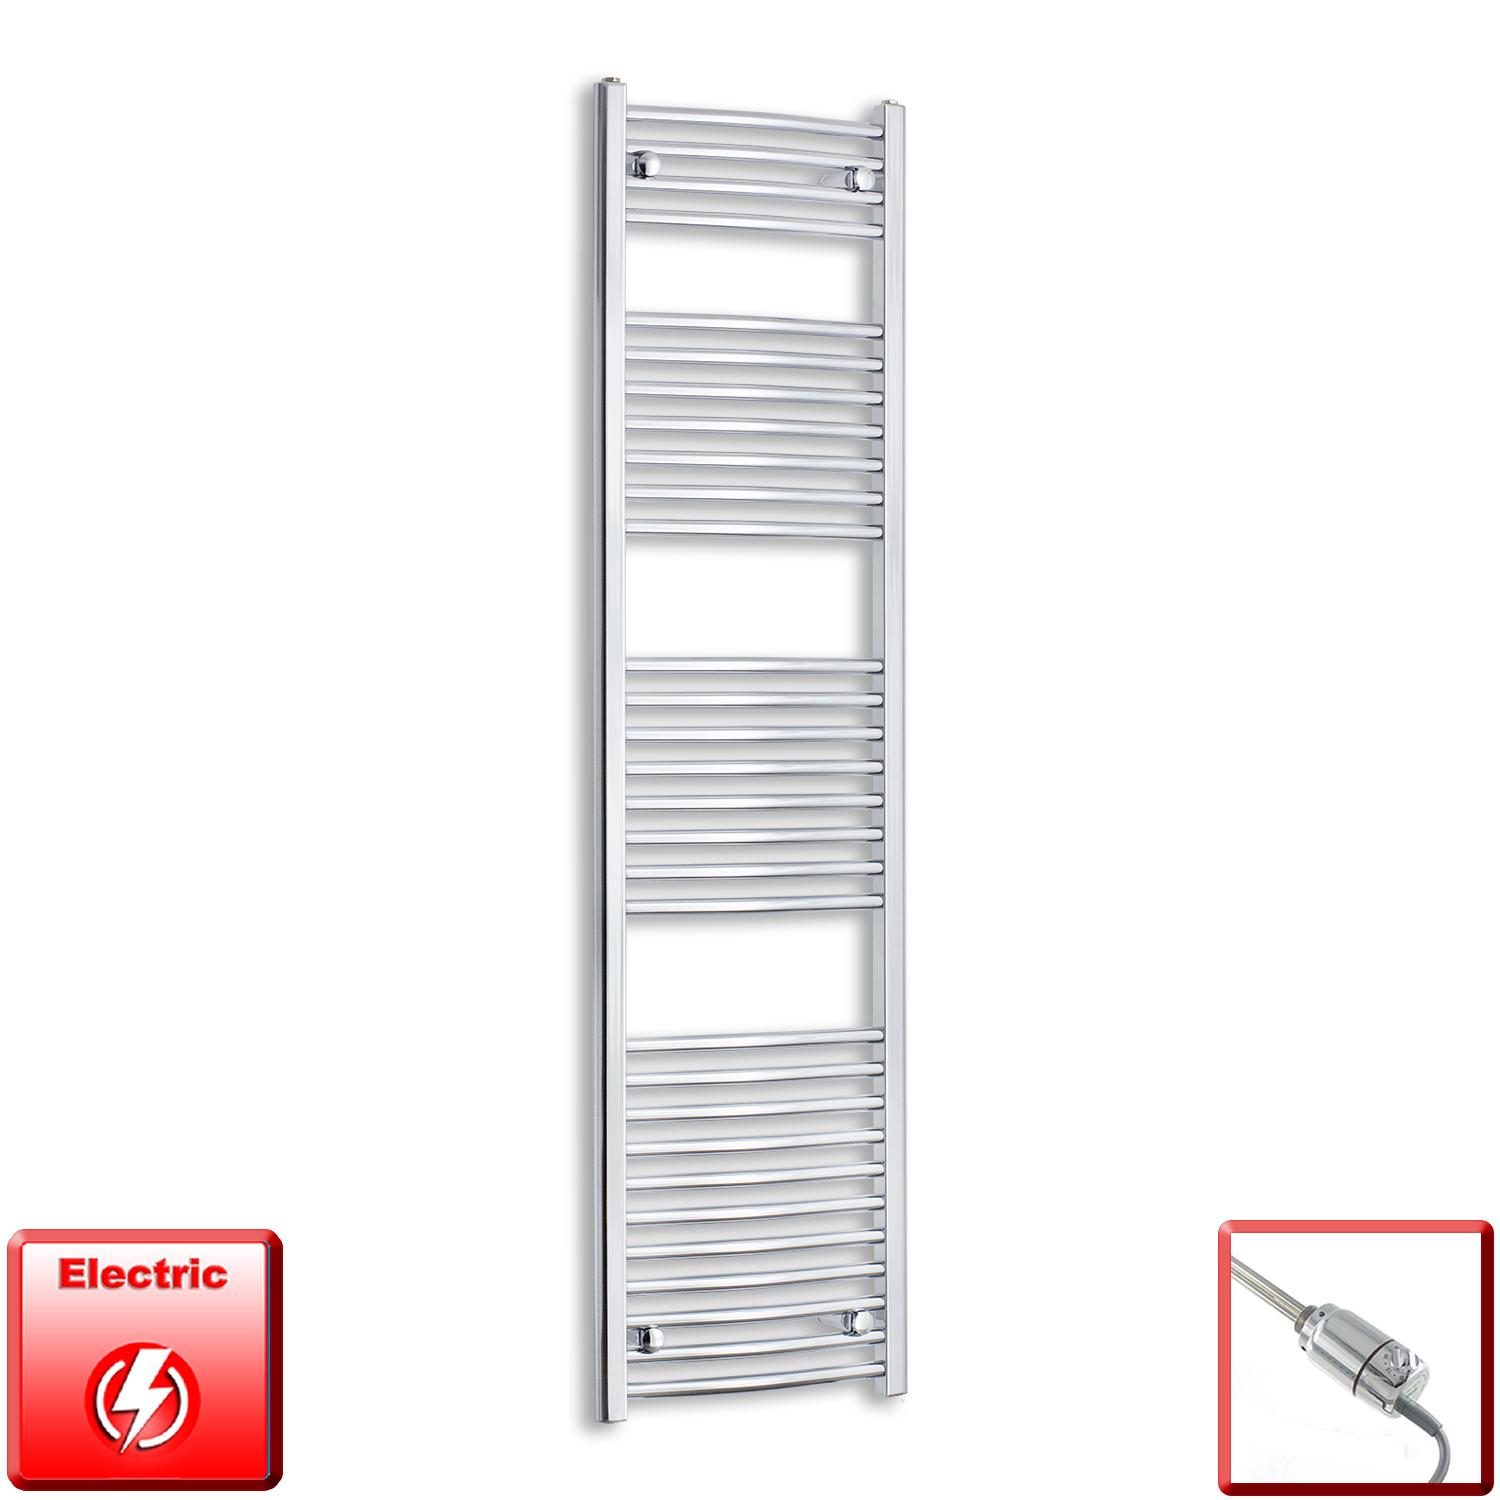 450mm Wide 1700mm High Flat Or Curved Chrome Pre-Filled Electric Heated Towel Rail Radiator HTR,GT Thermostatic / Straight